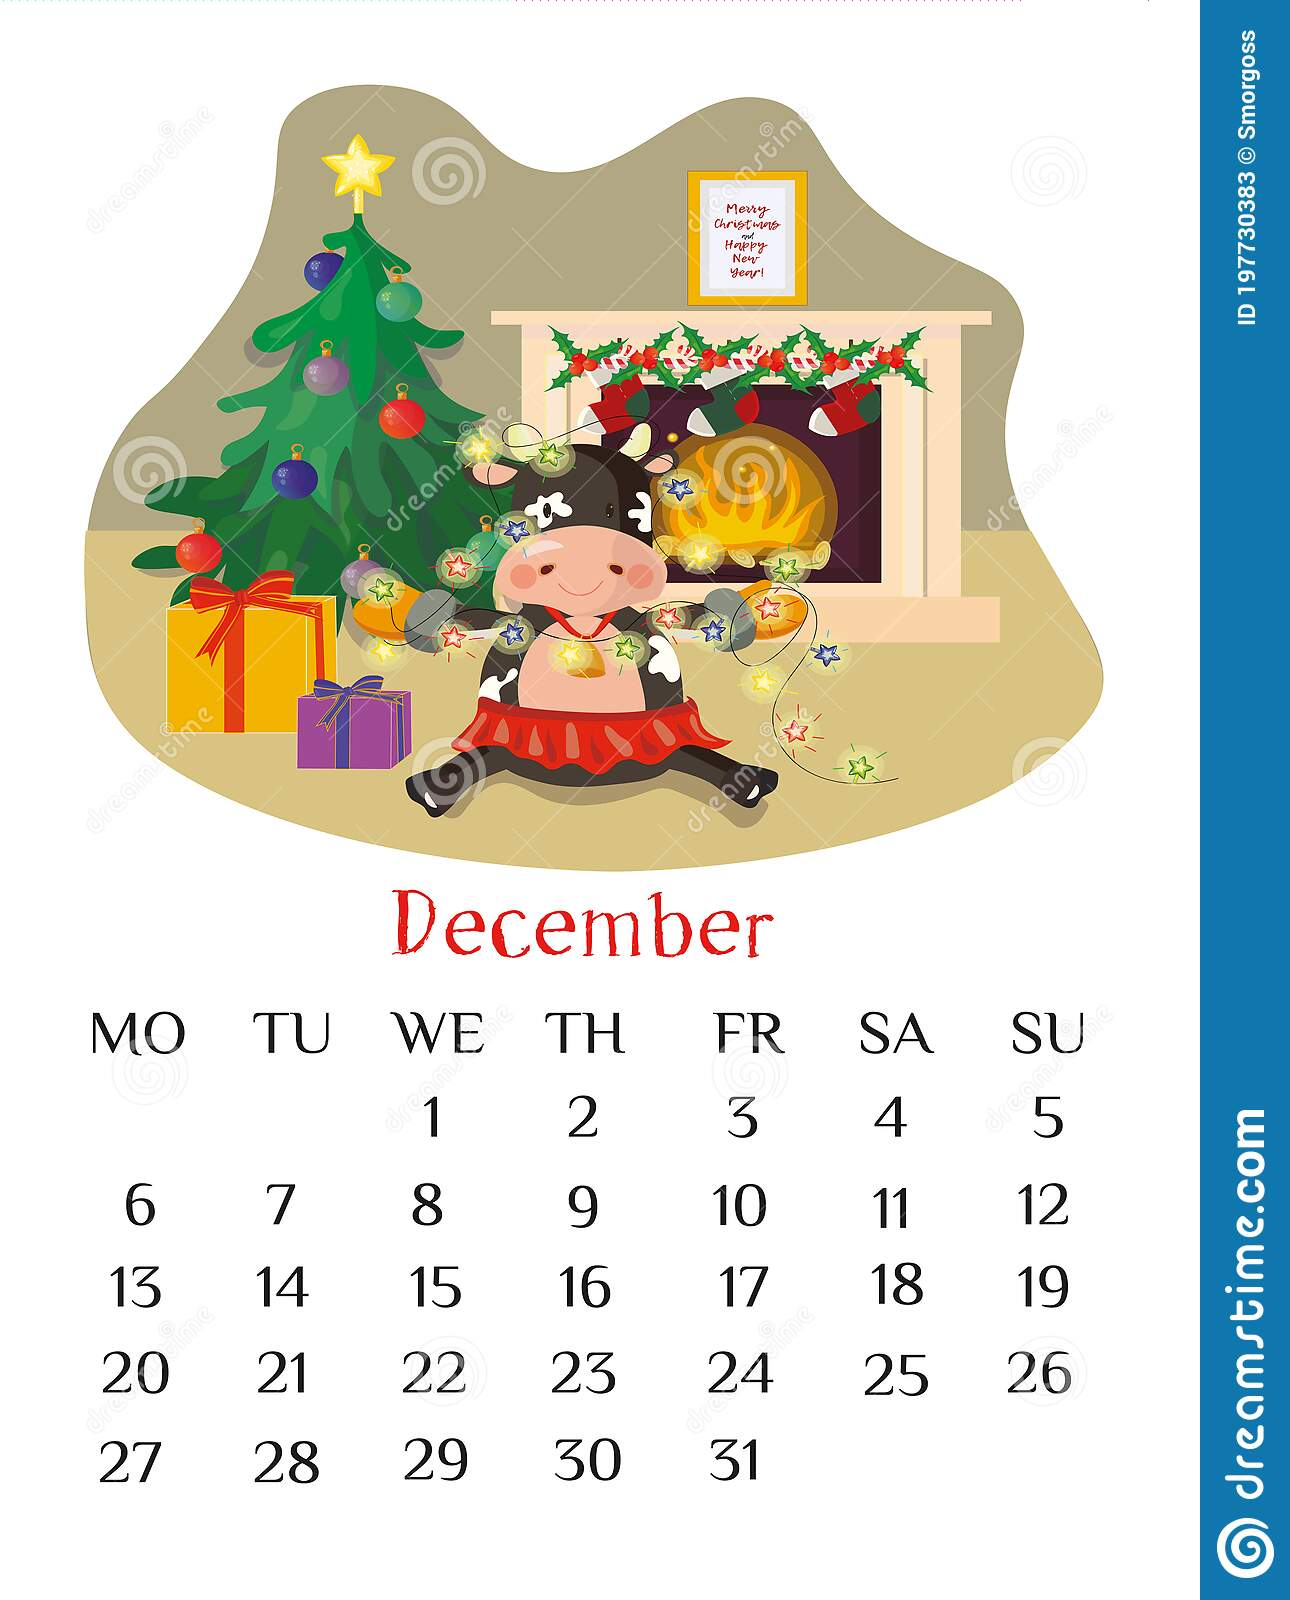 Calendar Christmas Winter December 2021 December Calendar Page 2021 With Bull Decorating Christmas Tree With Lights Indoor Winter Scene Stock Vector Illustration Of Collection Print 197730383